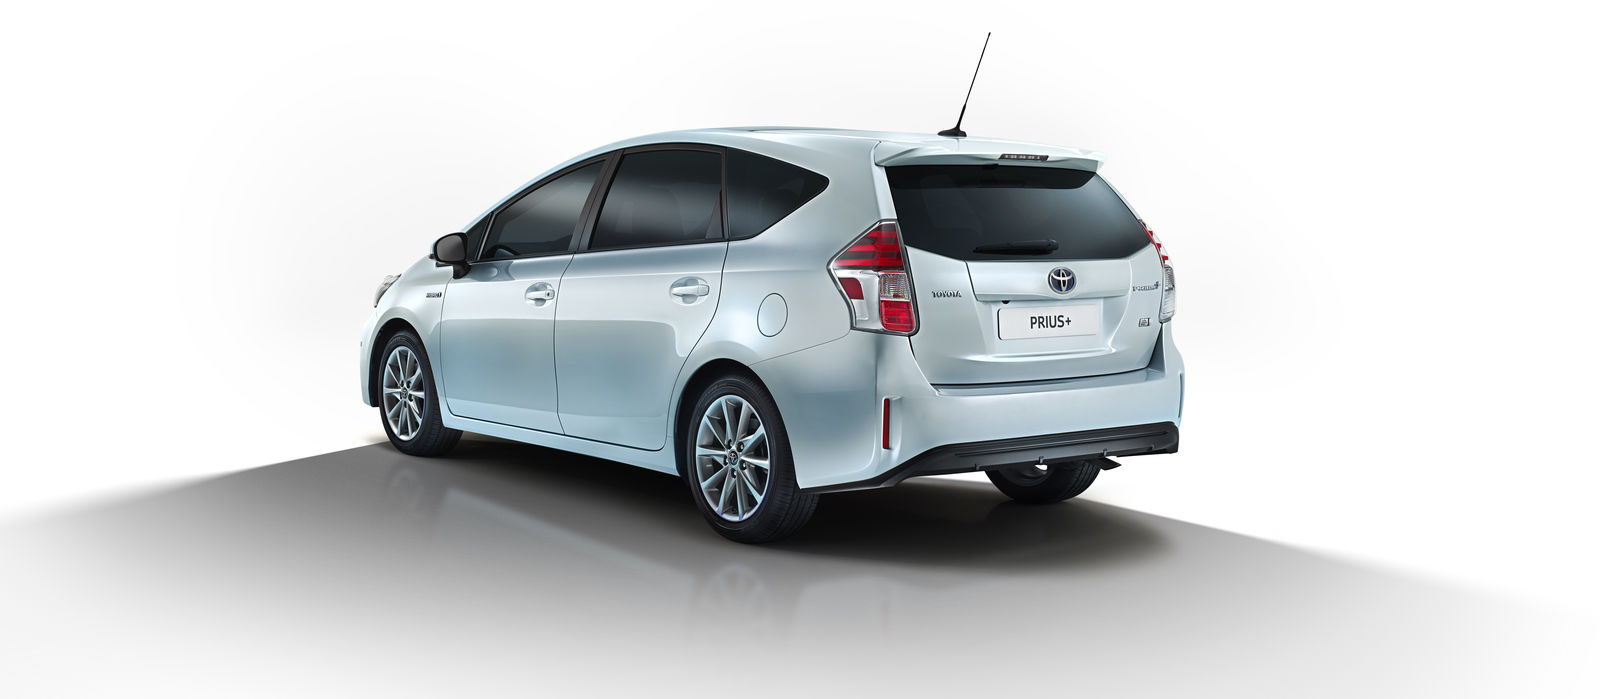 2015 toyota prius updates announced carwow. Black Bedroom Furniture Sets. Home Design Ideas